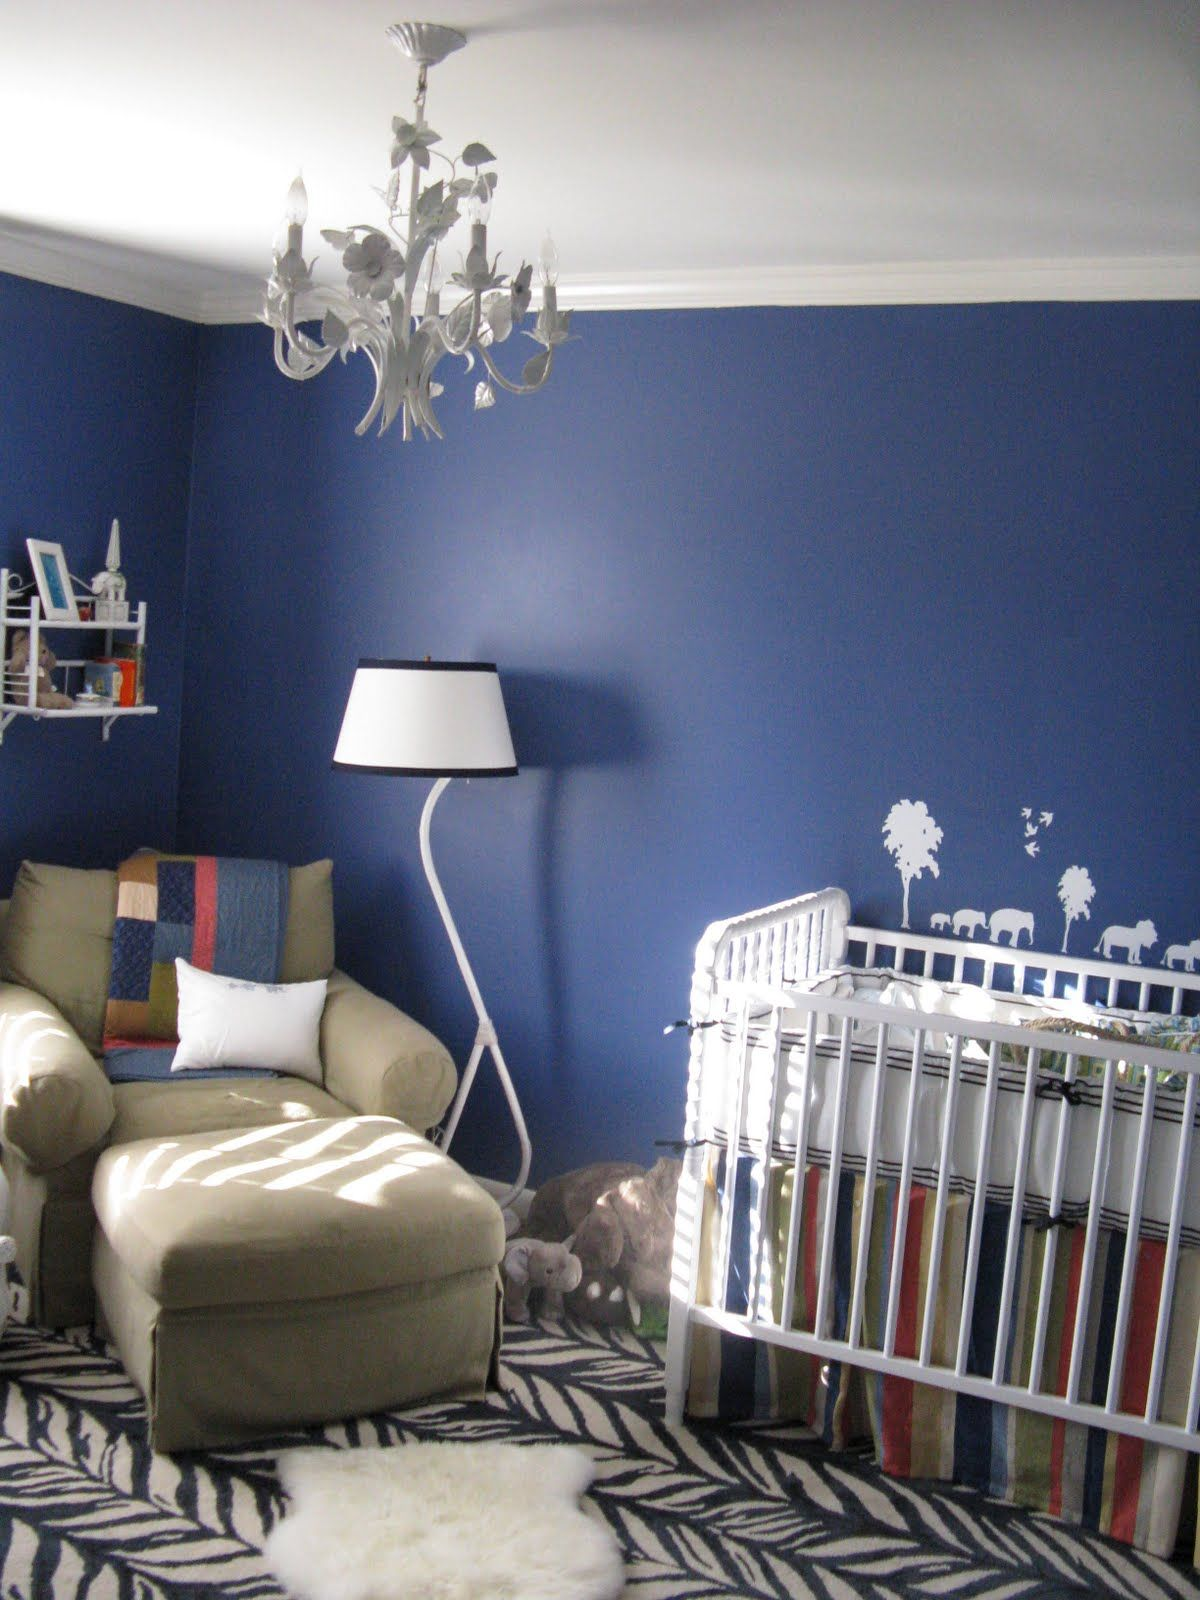 Sherwin Williams Revel Blue color for walls Matters of Style